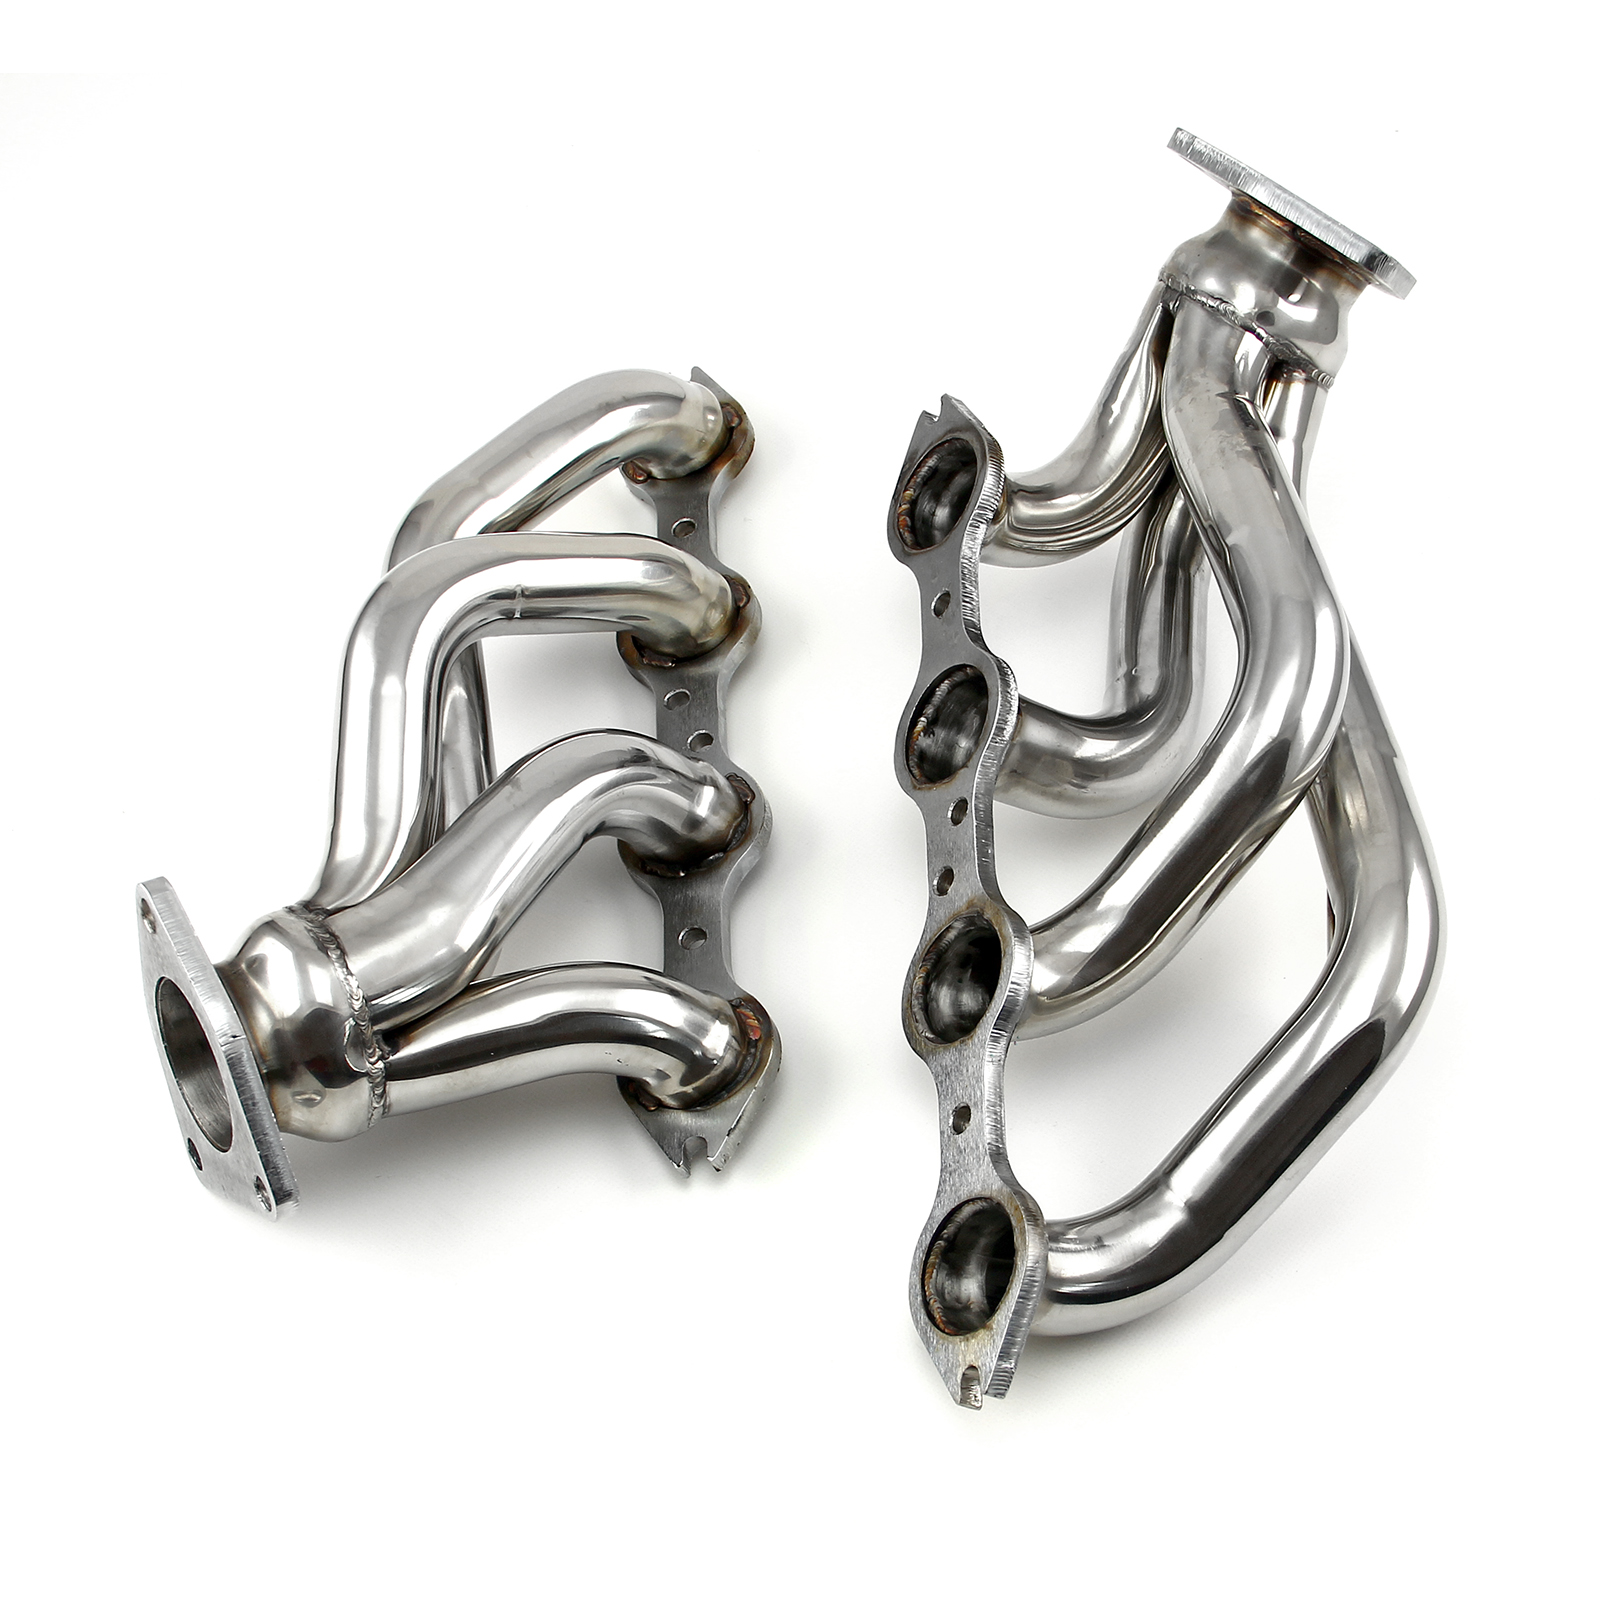 Chevy LS1 LS6 Truck Stainless Steel Exhaust Headers